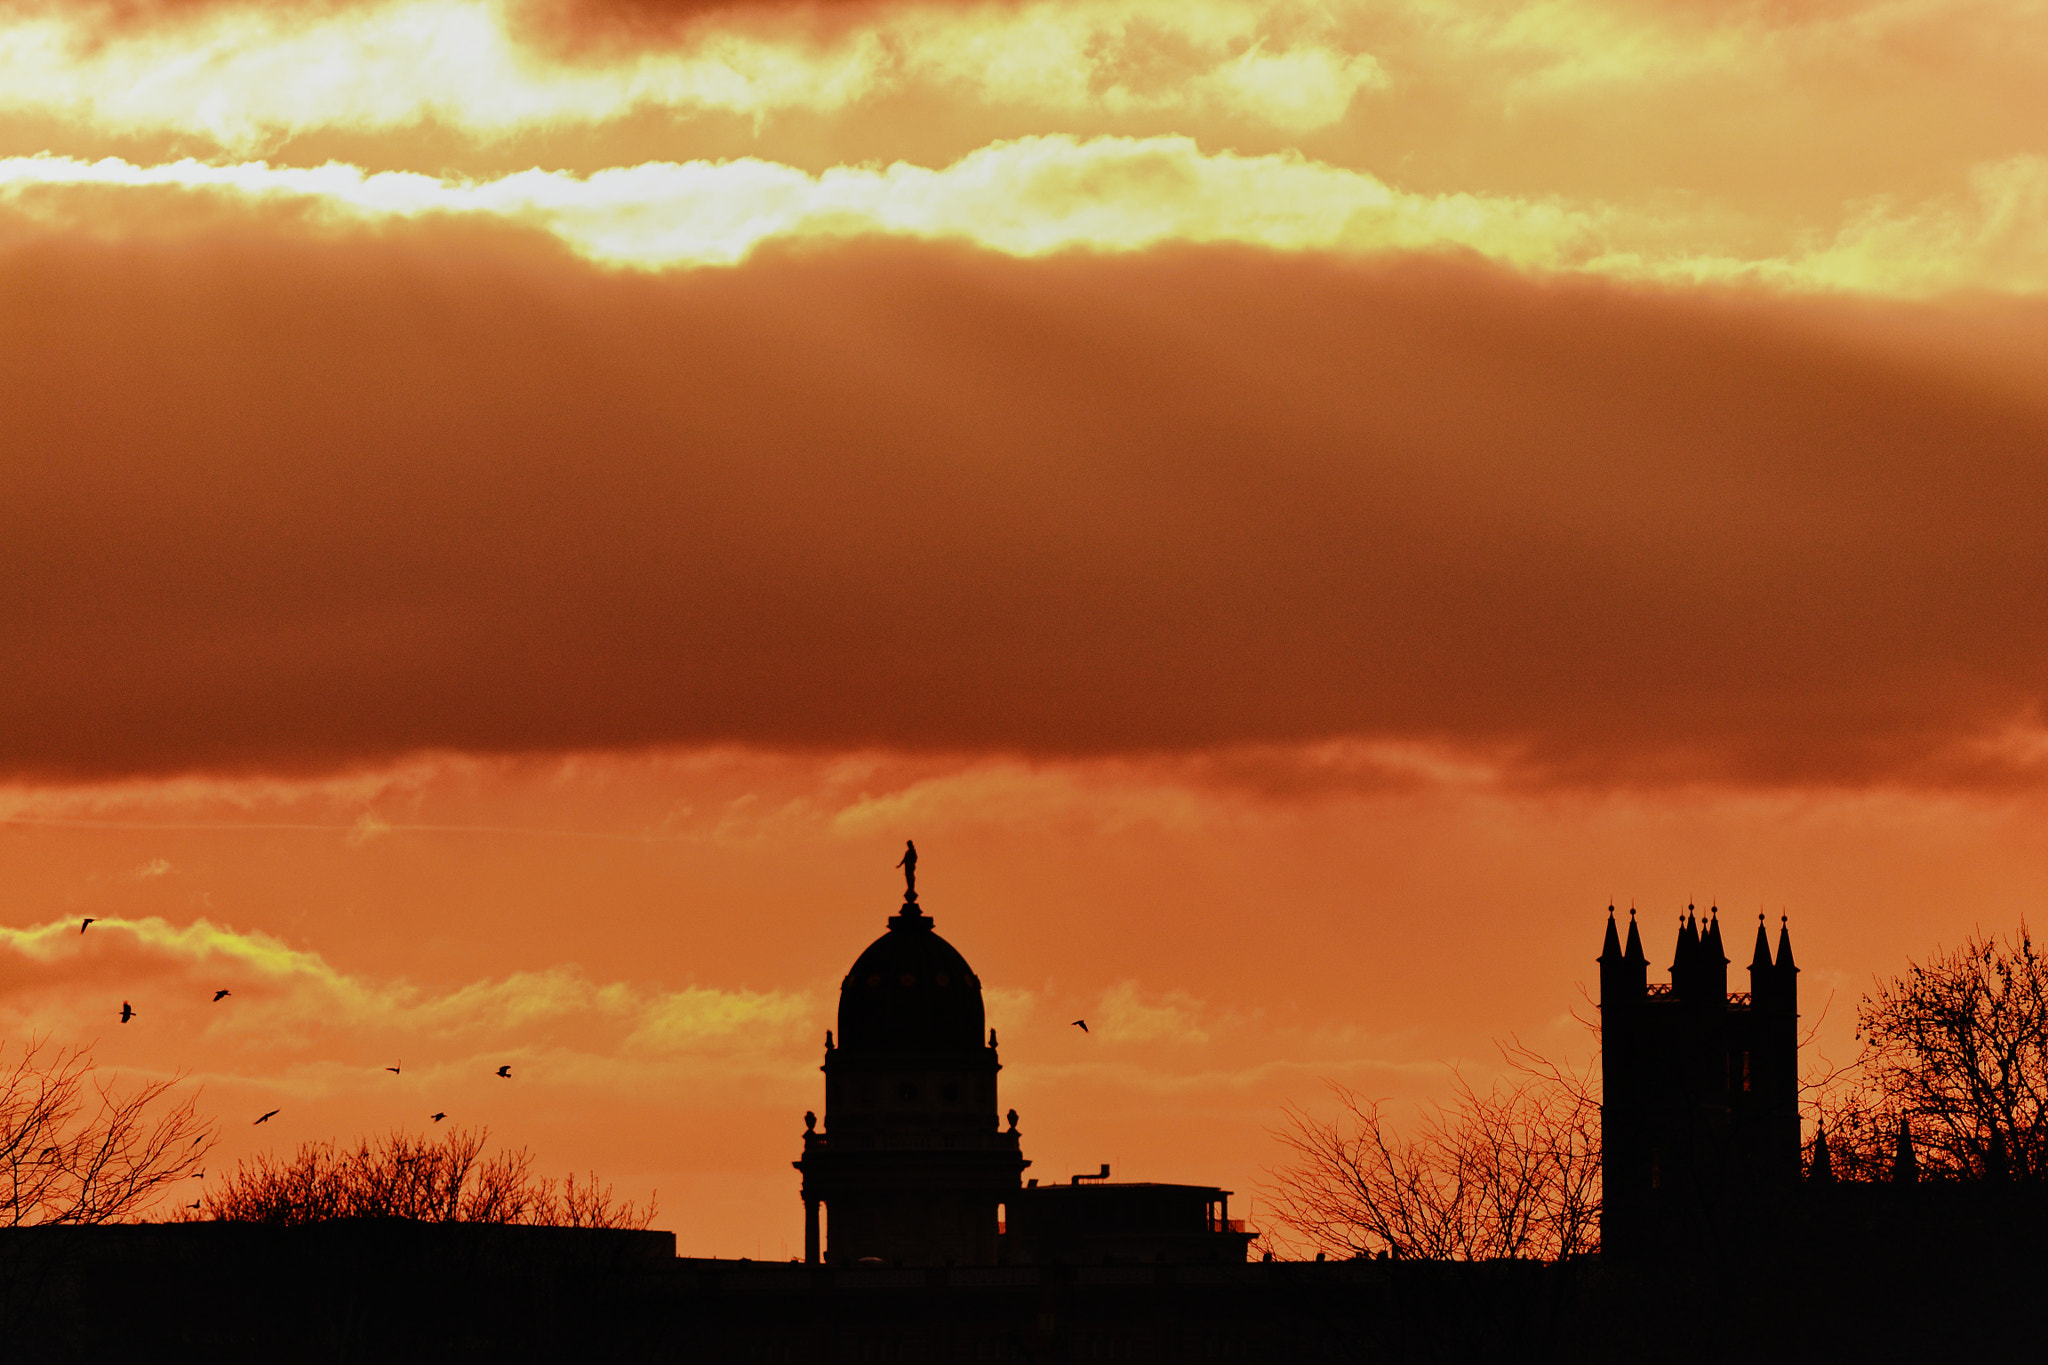 Photograph sunset in Berlin by Mahmut Islam on 500px